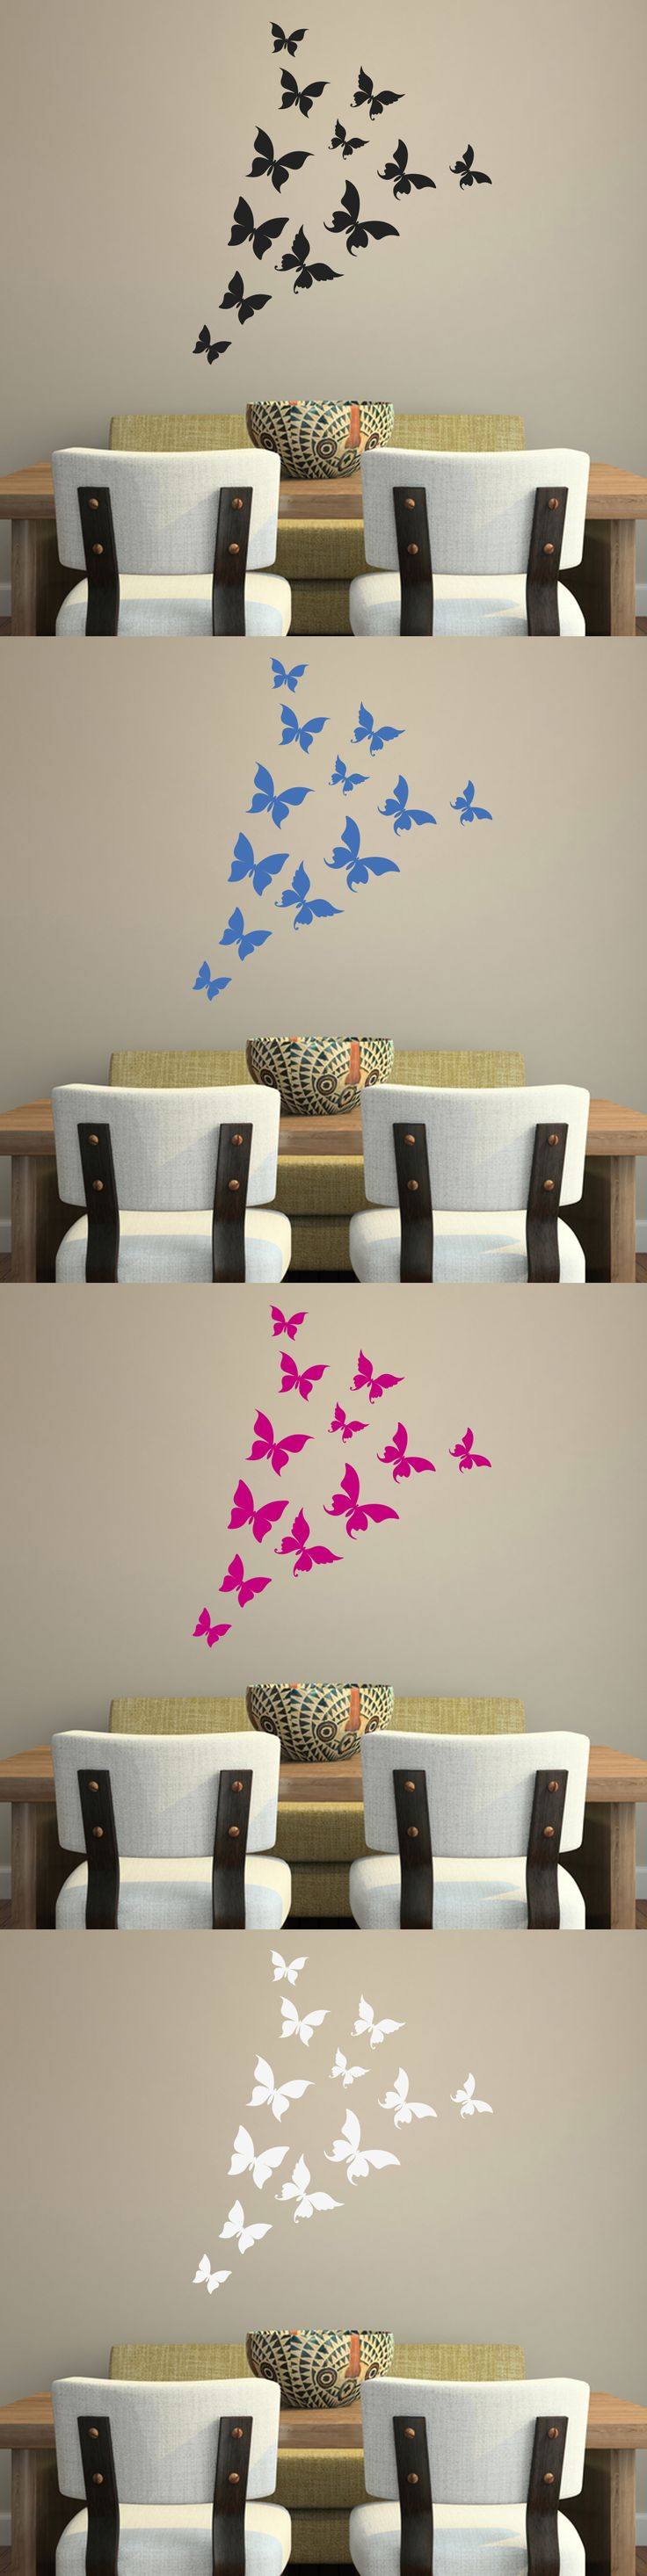 mustache decor decal vinyl wall sticker pink vinyls and funny